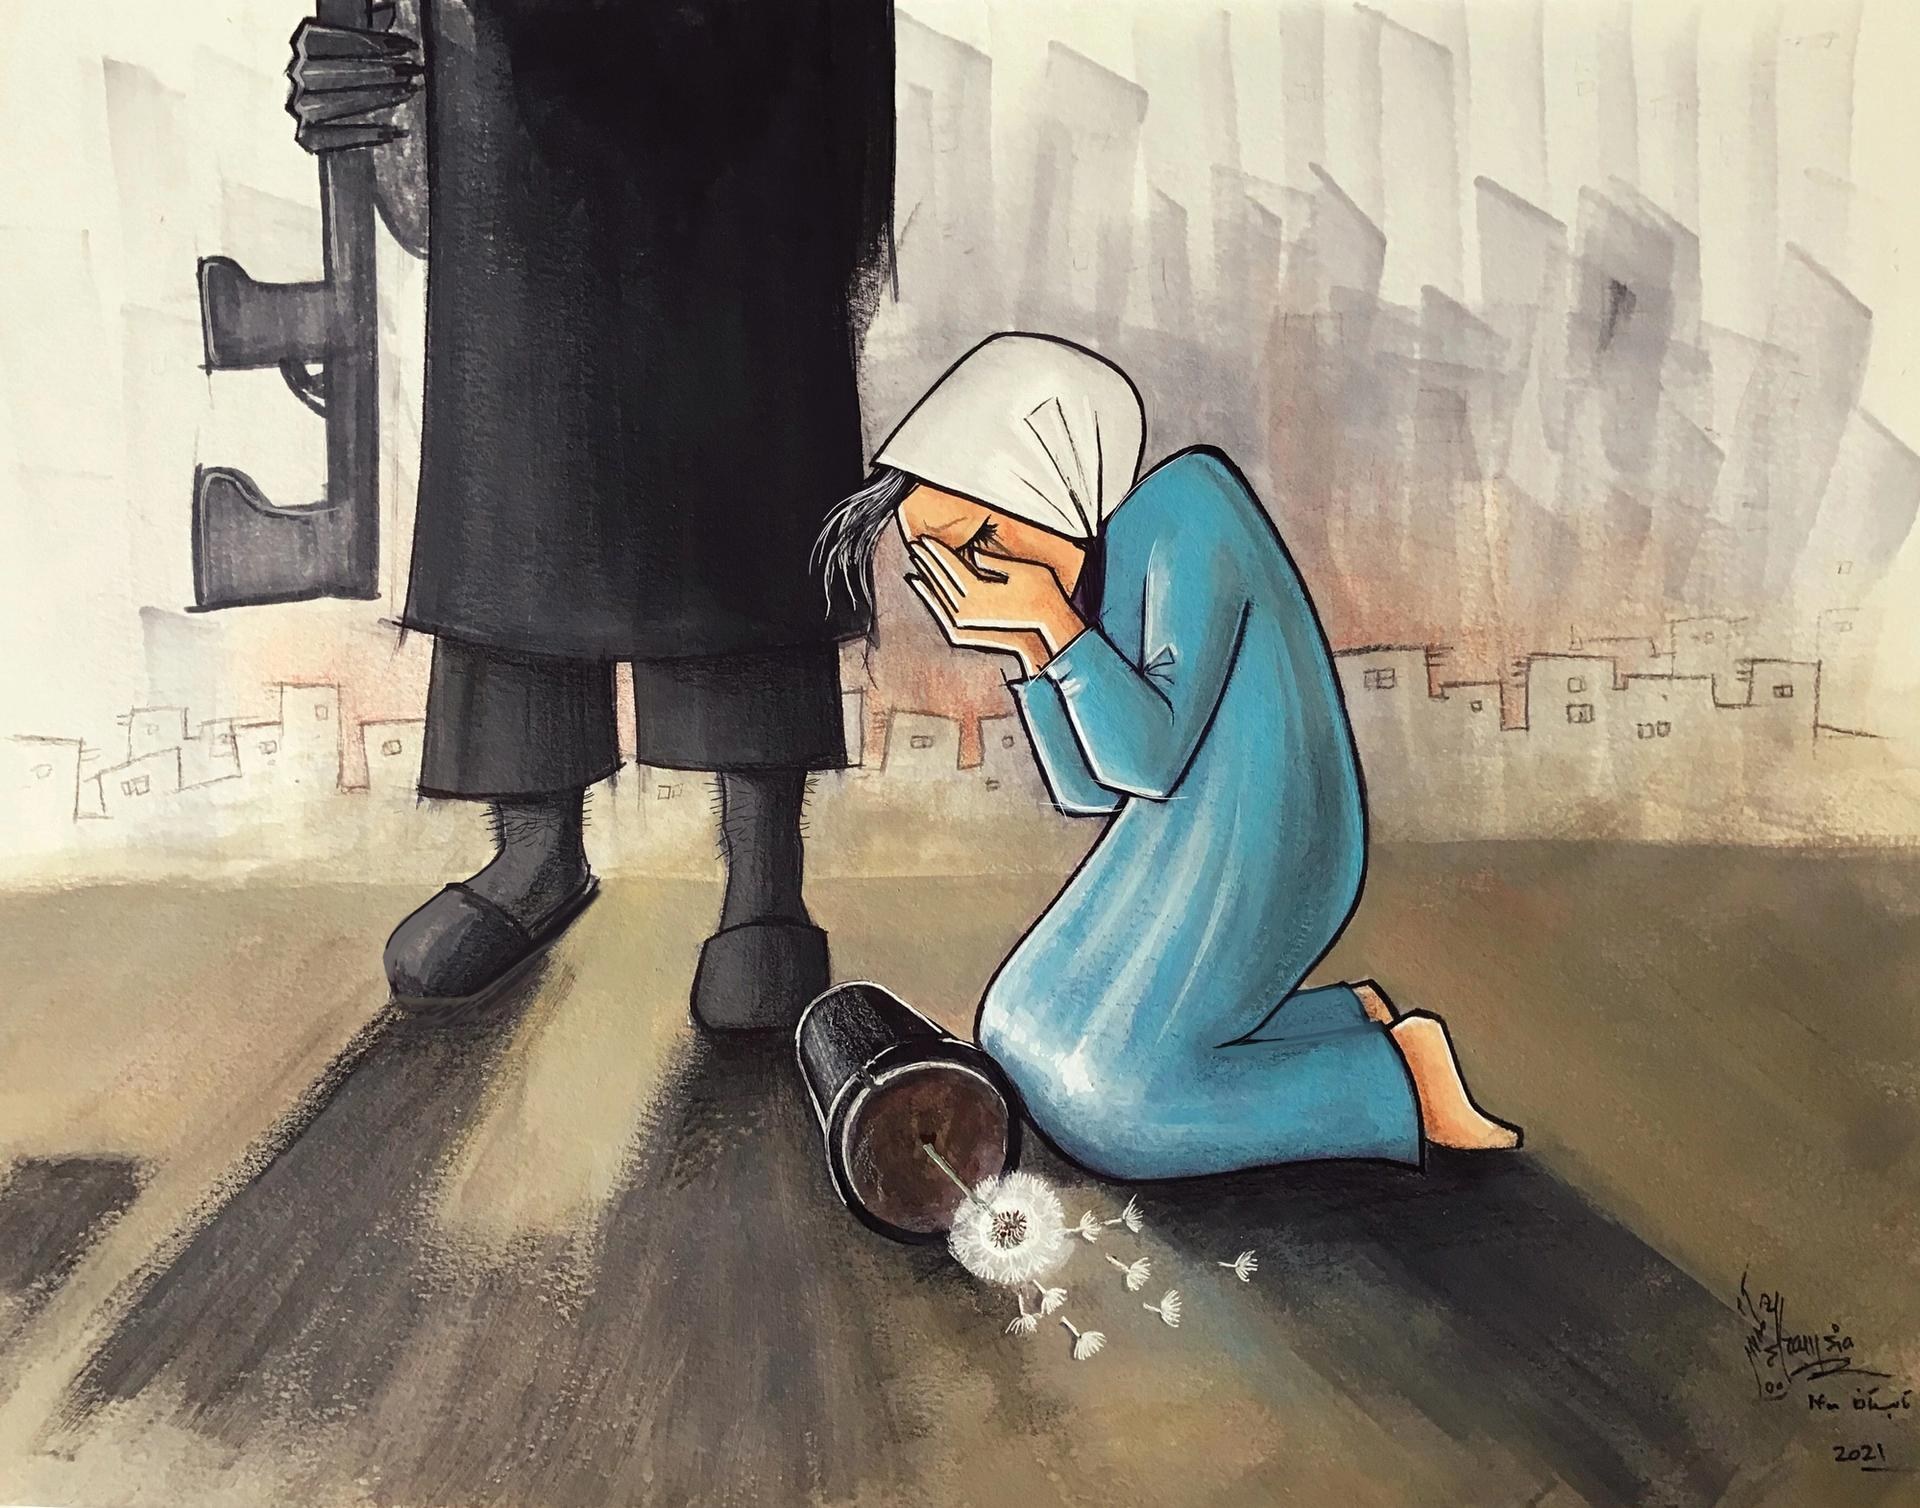 Shamsia Hassani's Death to Darkness (17 August 2021). Courtesy of the artist